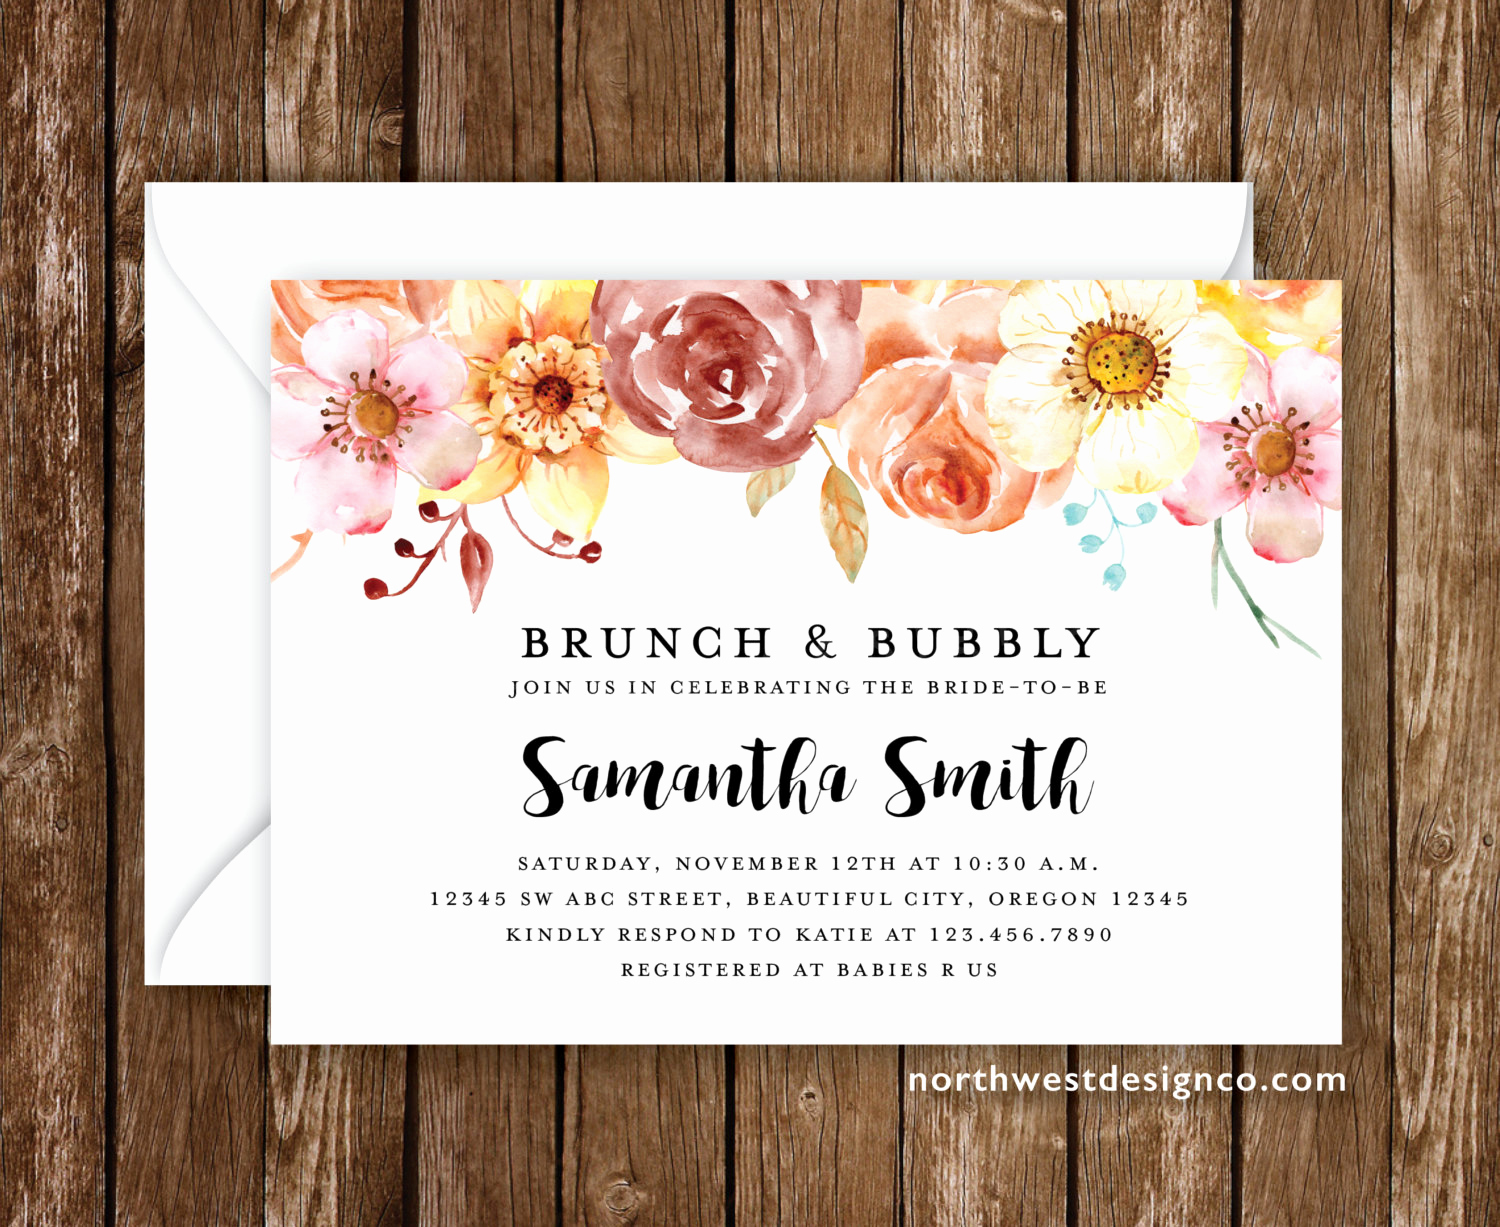 Bridal Shower Brunch Invitation Wording Best Of Brunch and Bubbly Bridal Shower Invitation Spring Invitation